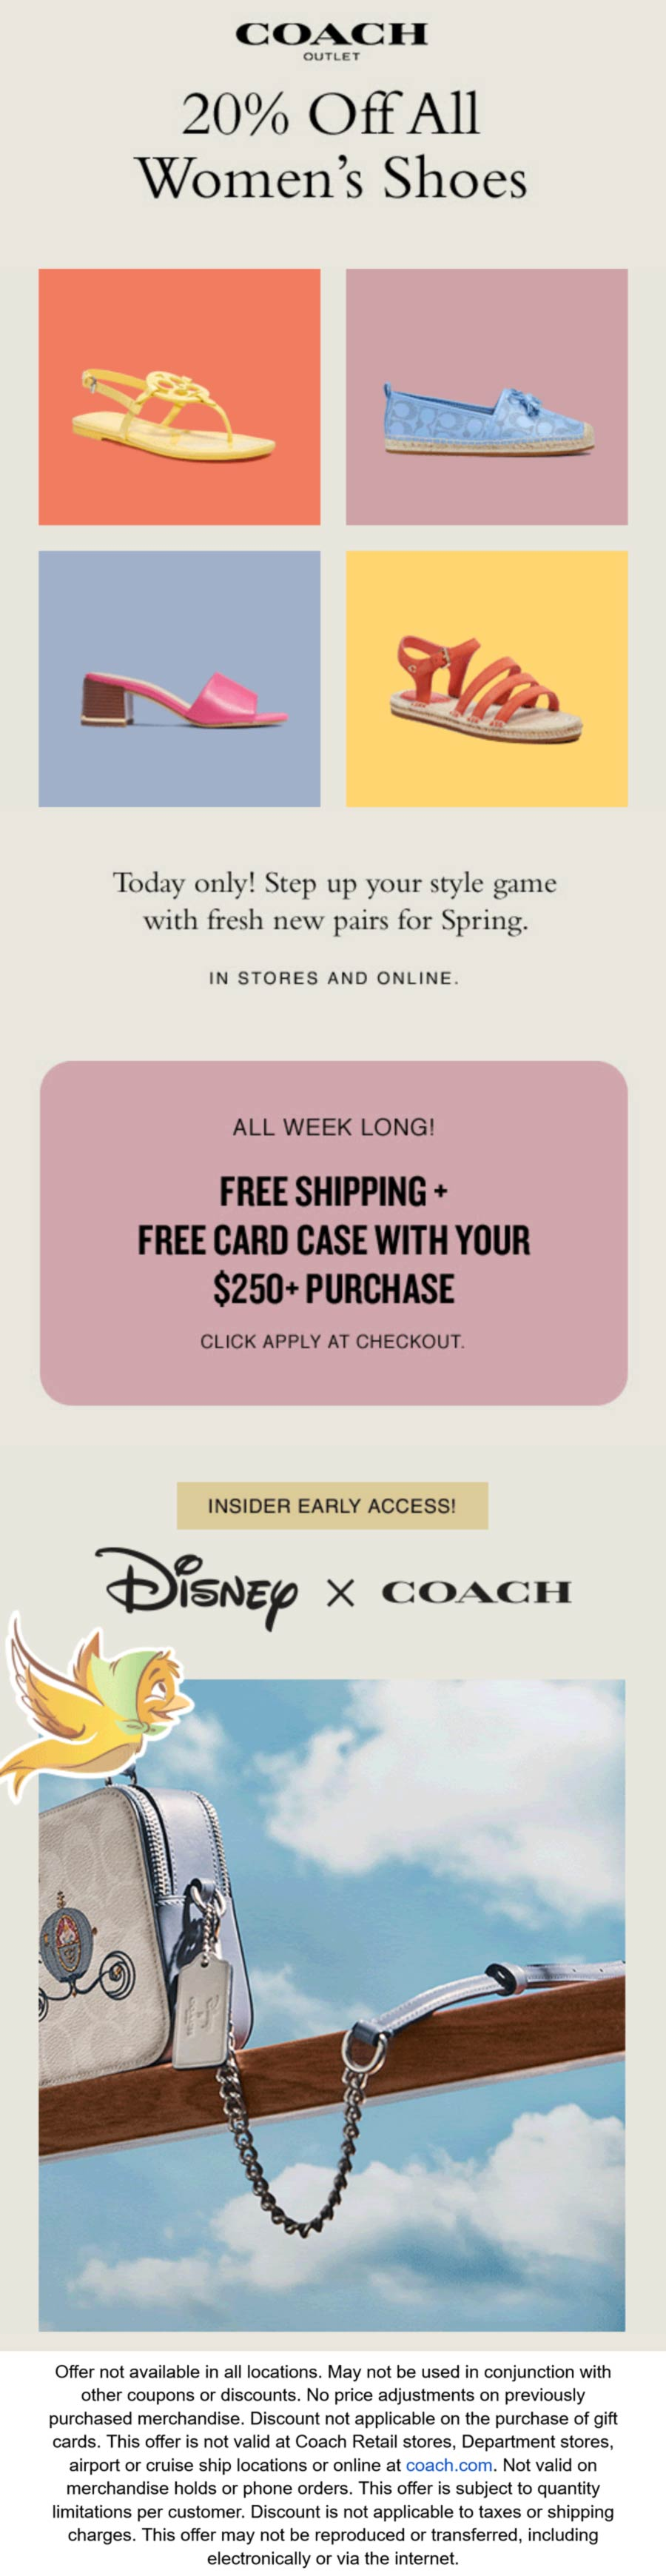 Coach Outlet stores Coupon  20% off all womens shoes today at Coach Outlet #coachoutlet